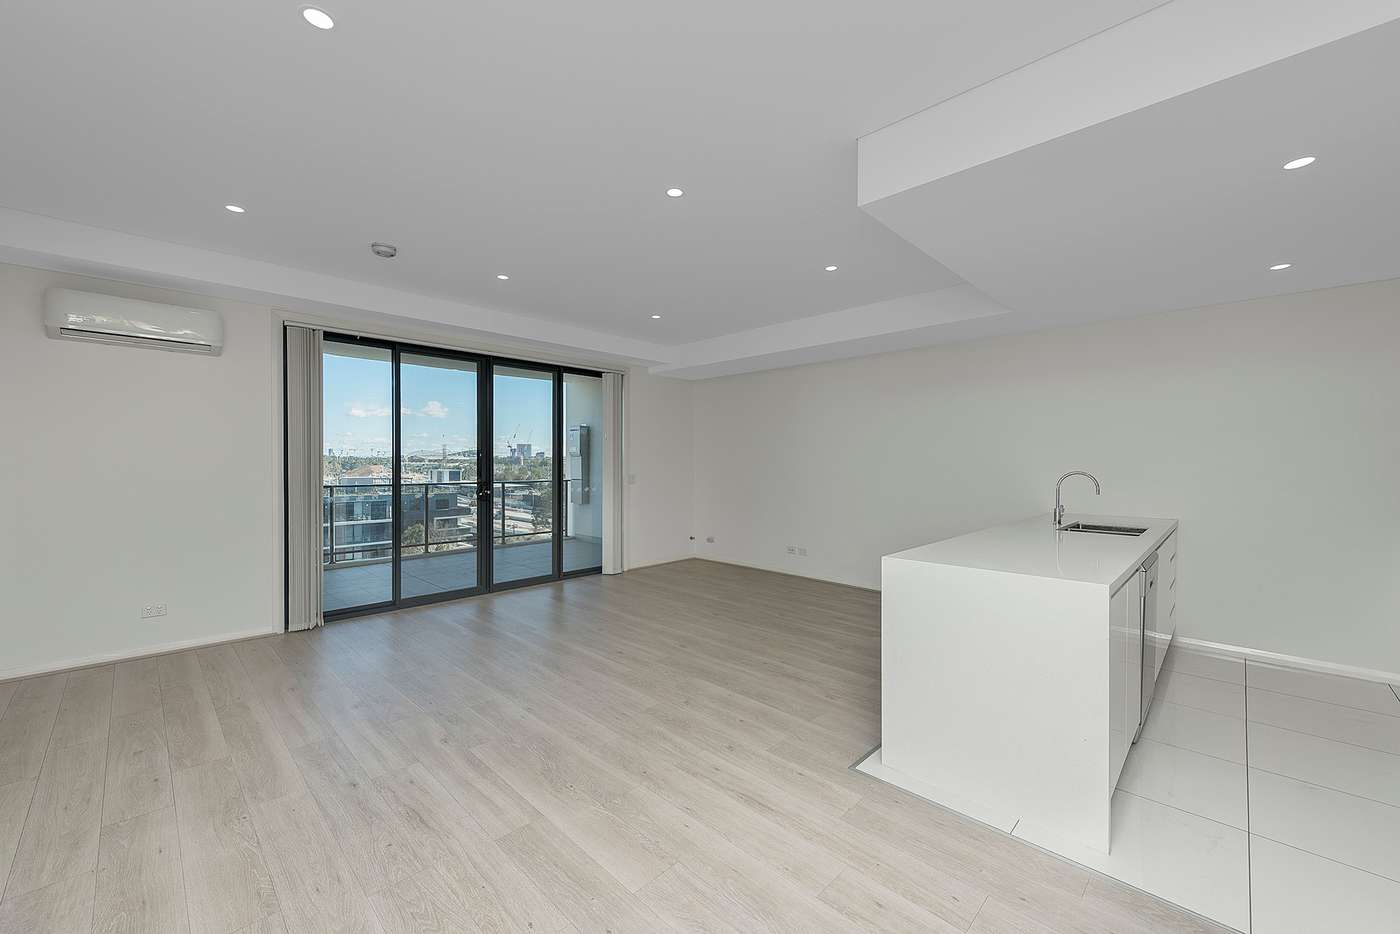 Main view of Homely apartment listing, 607/7-11 Derowie Avenue, Homebush NSW 2140